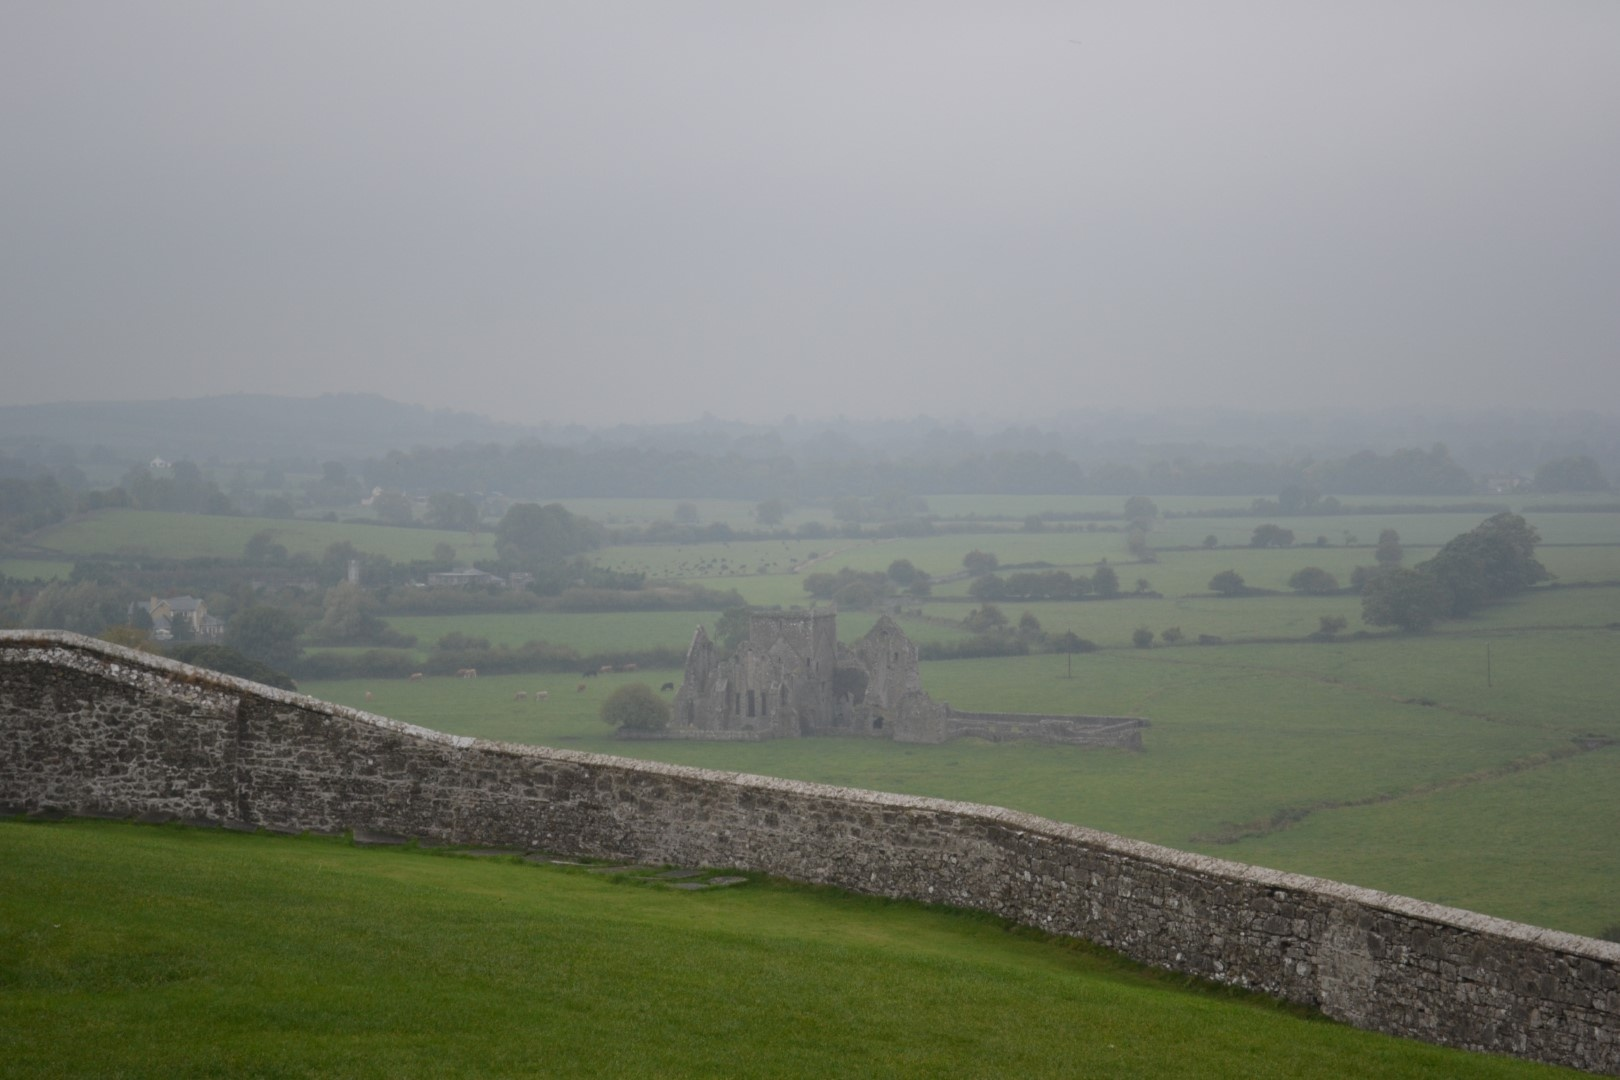 visiting ireland tips: Prepare for all weather